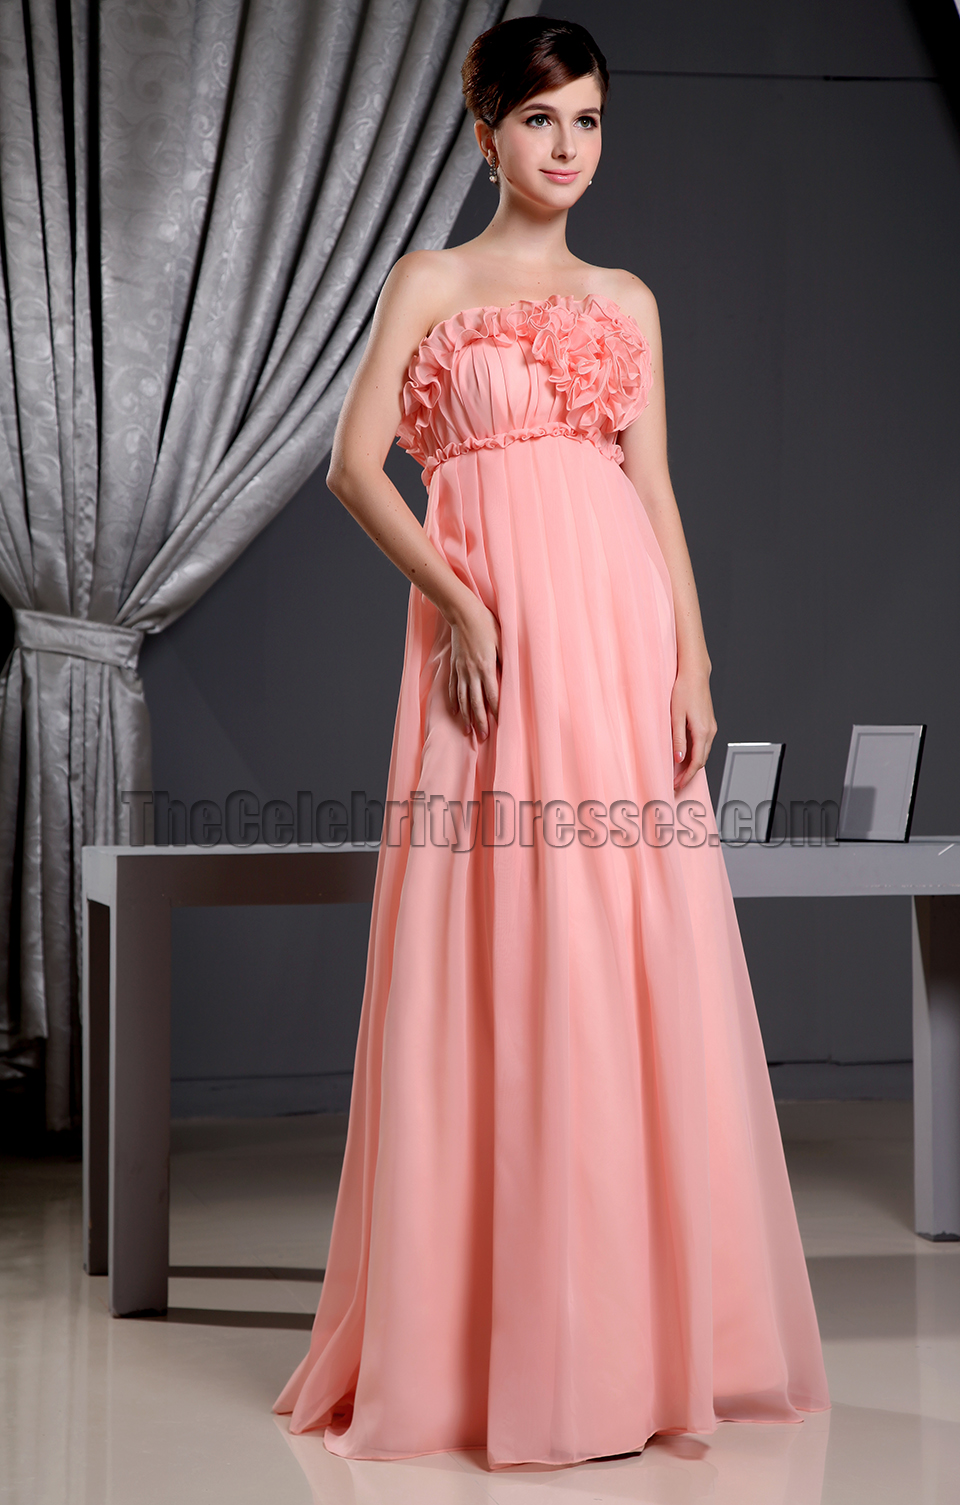 Coral Strapless A-Line Prom Dress Formal Bridesmaid Dresses ...